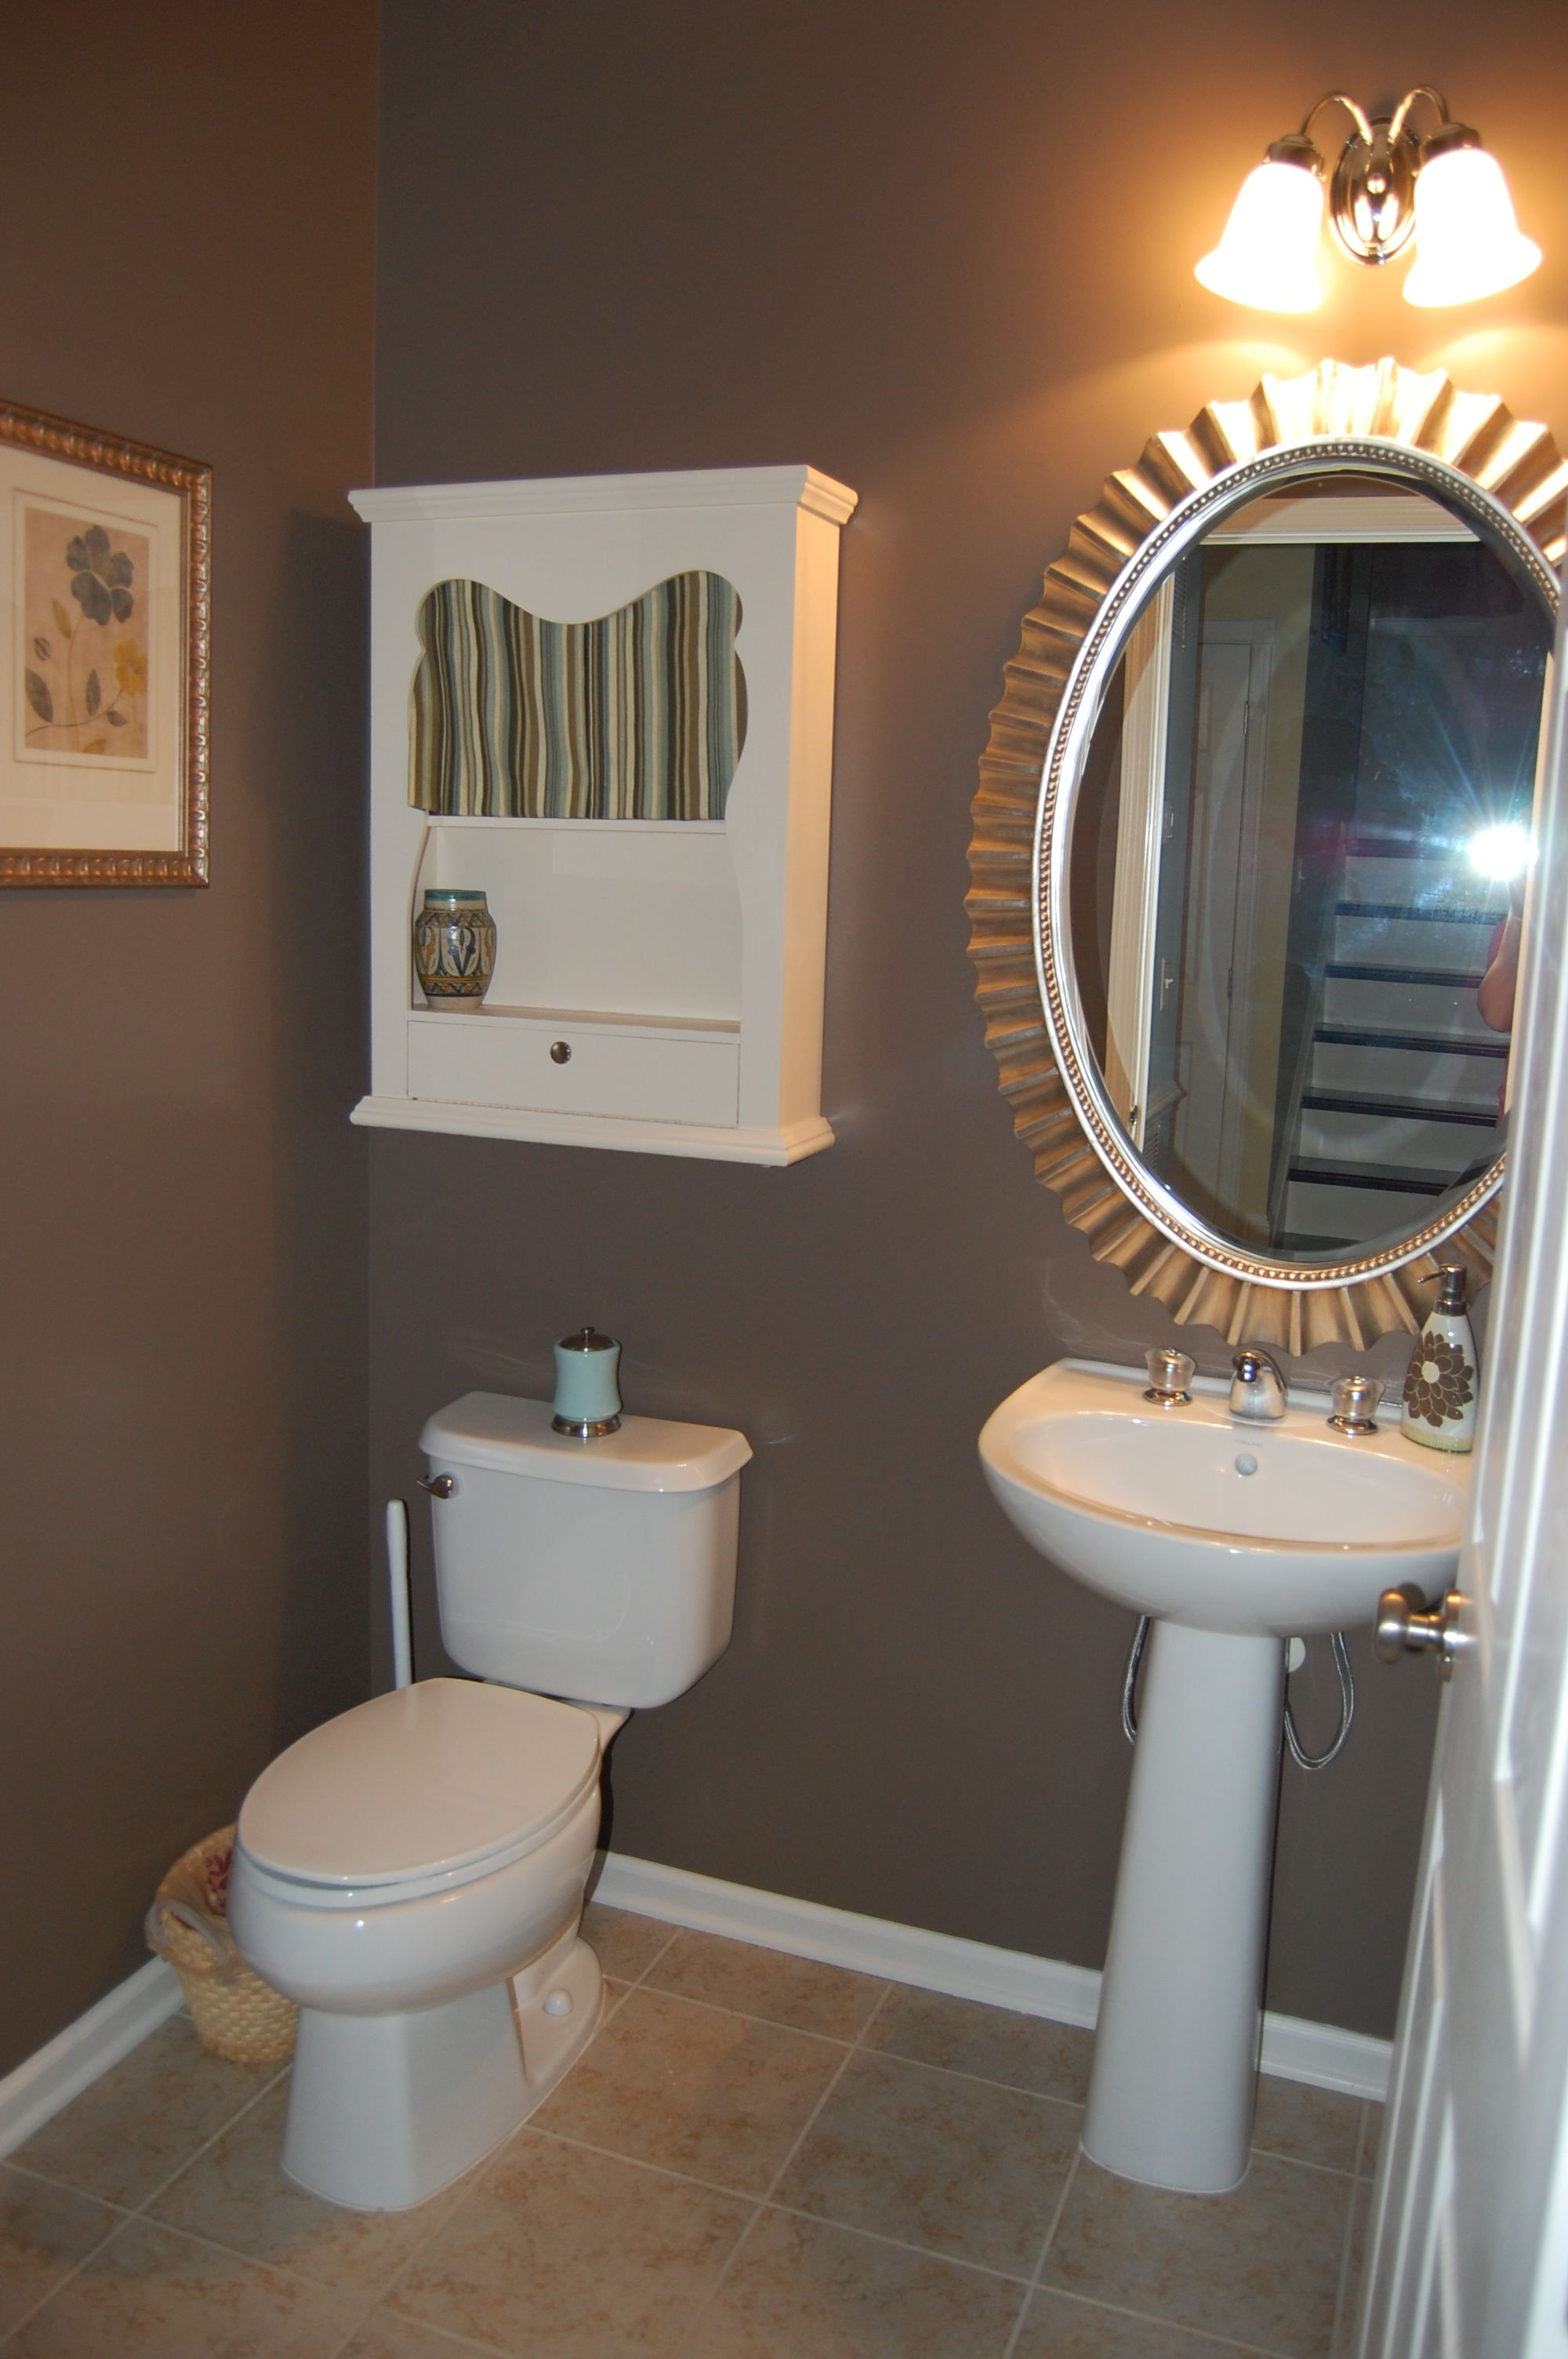 Paint ideas for bathroom walls - Powder Room Bathroom Color Neutral Bathroom Colorspaint